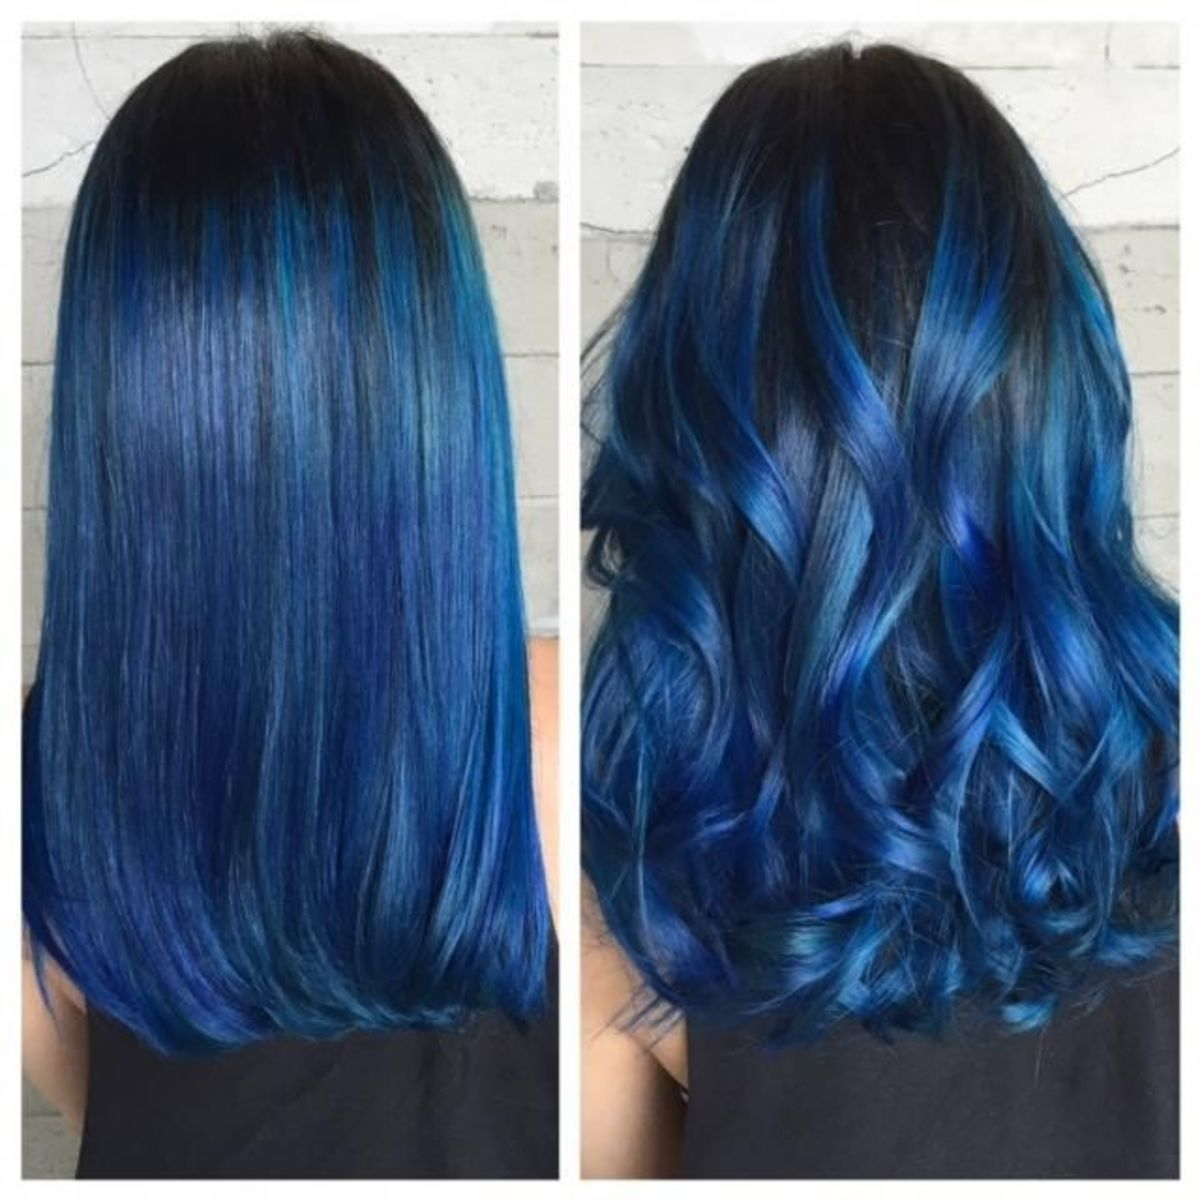 DIY Hair: 10 Blue Hair Color Ideas